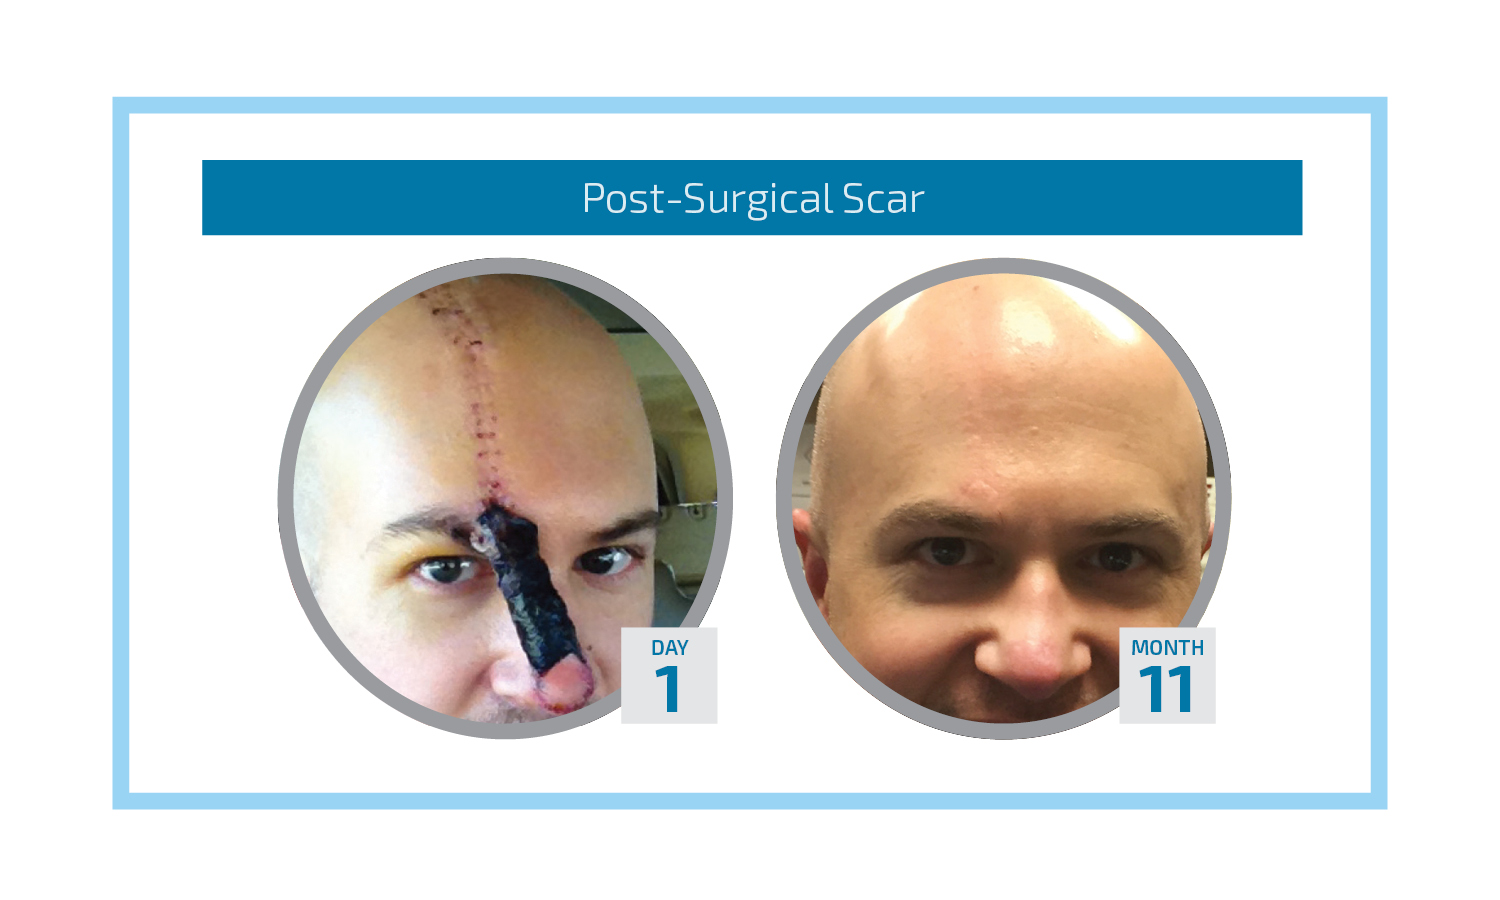 Post Surgical Scar Graphic.jpg